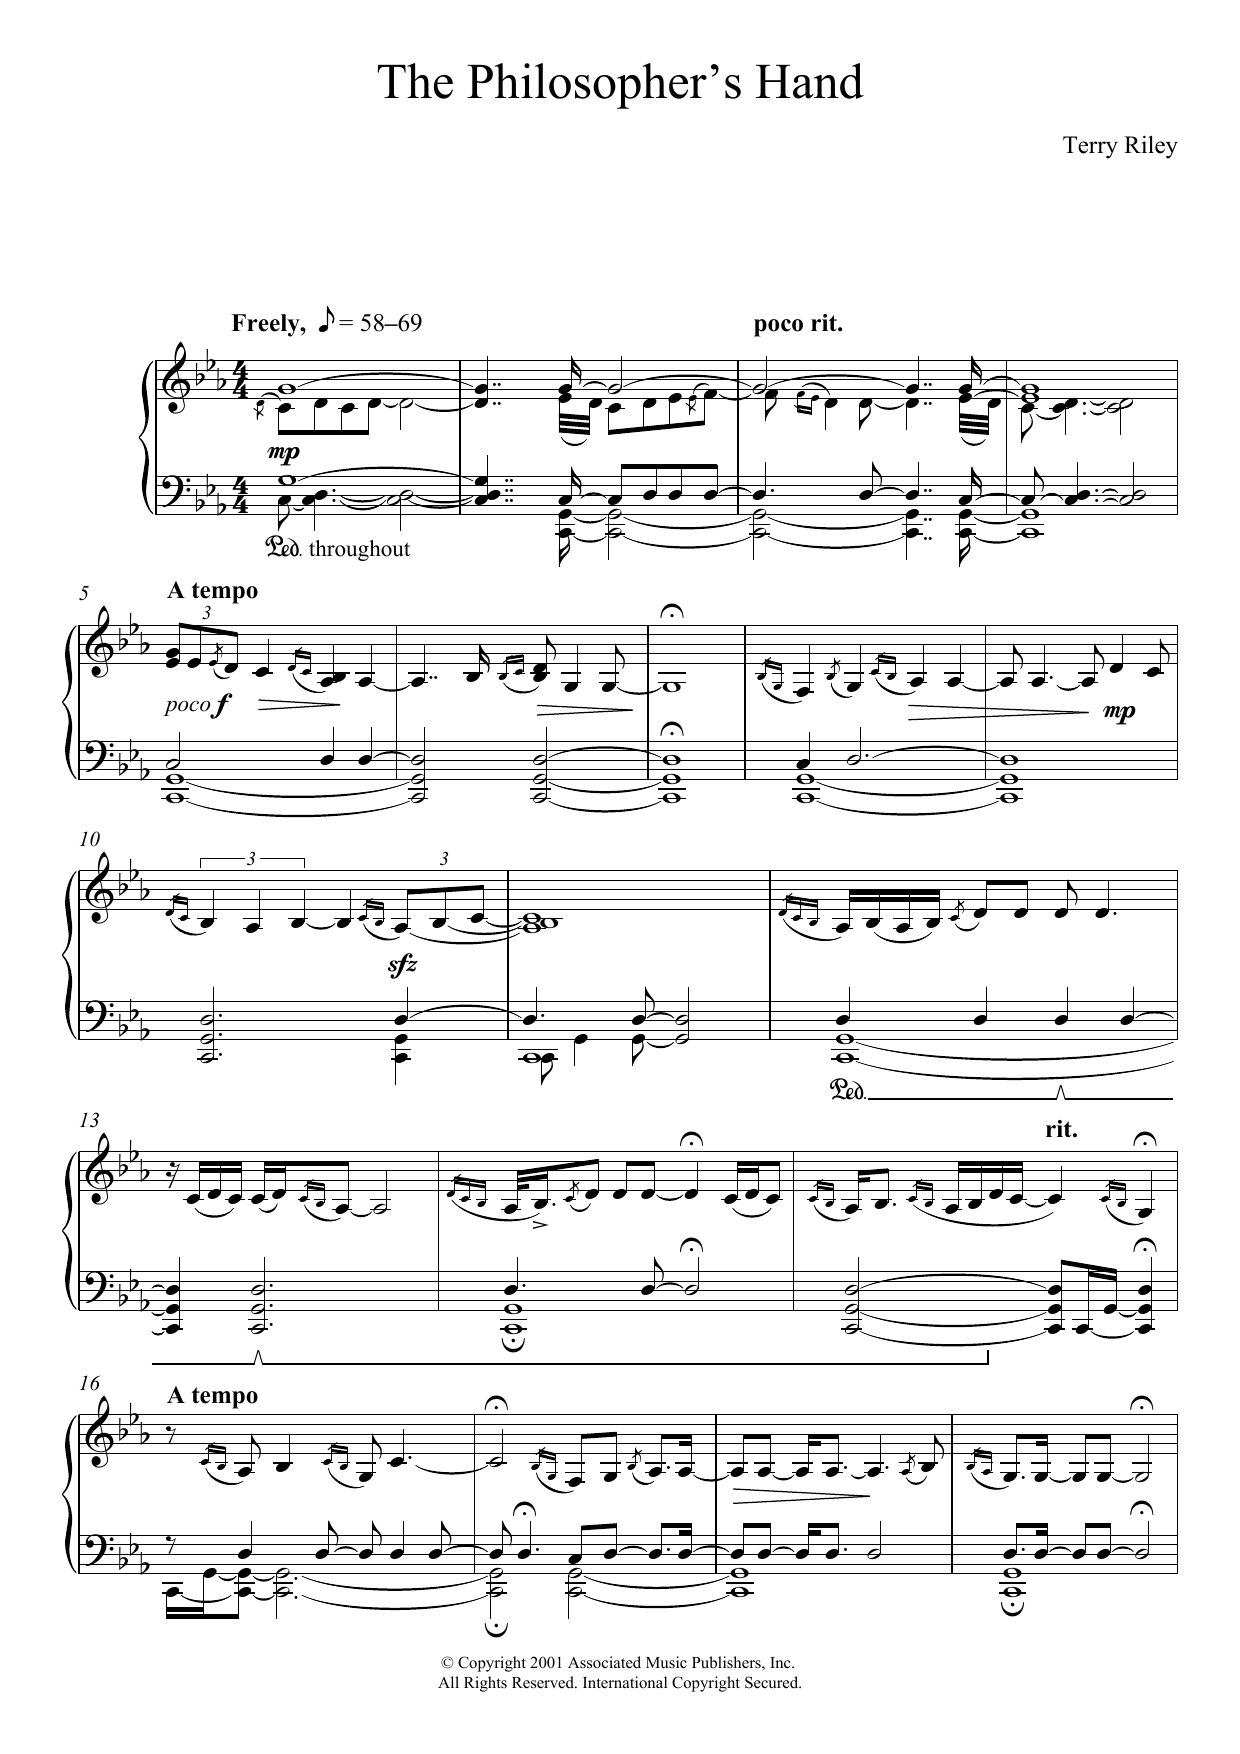 The Philosopher's Hand Sheet Music